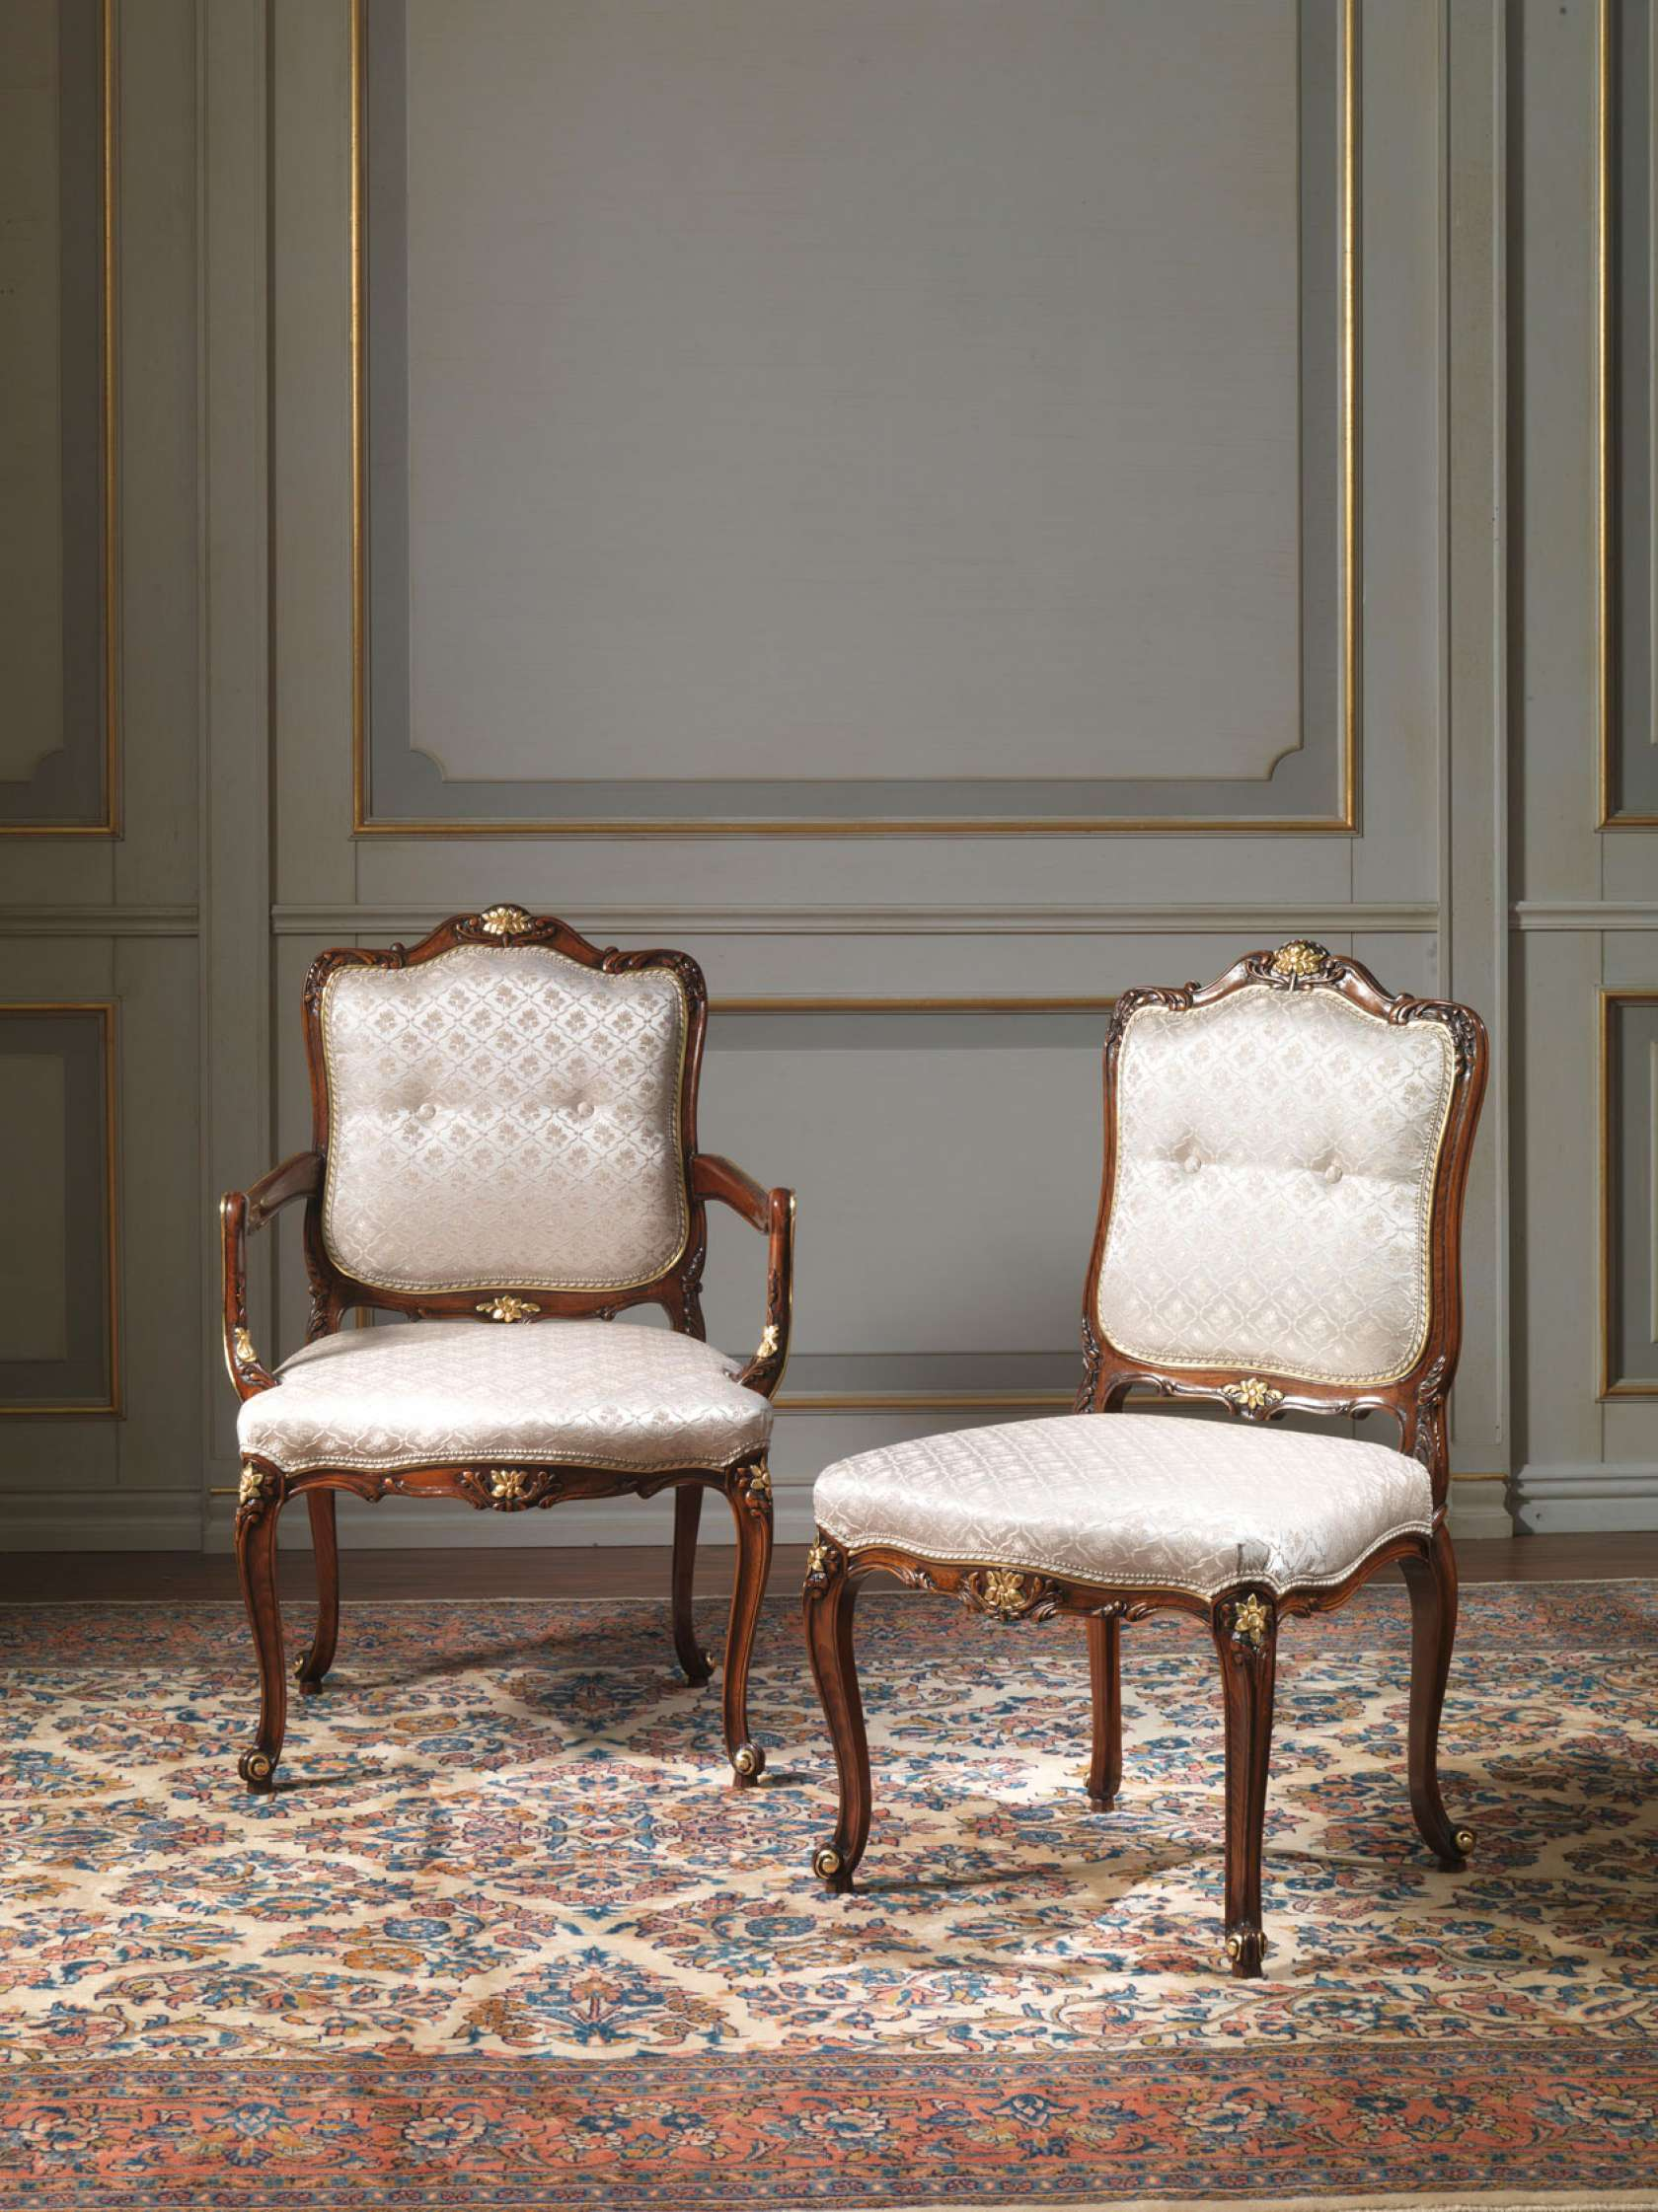 Louis xv living room furniture - Chairs In Louis Xv Style